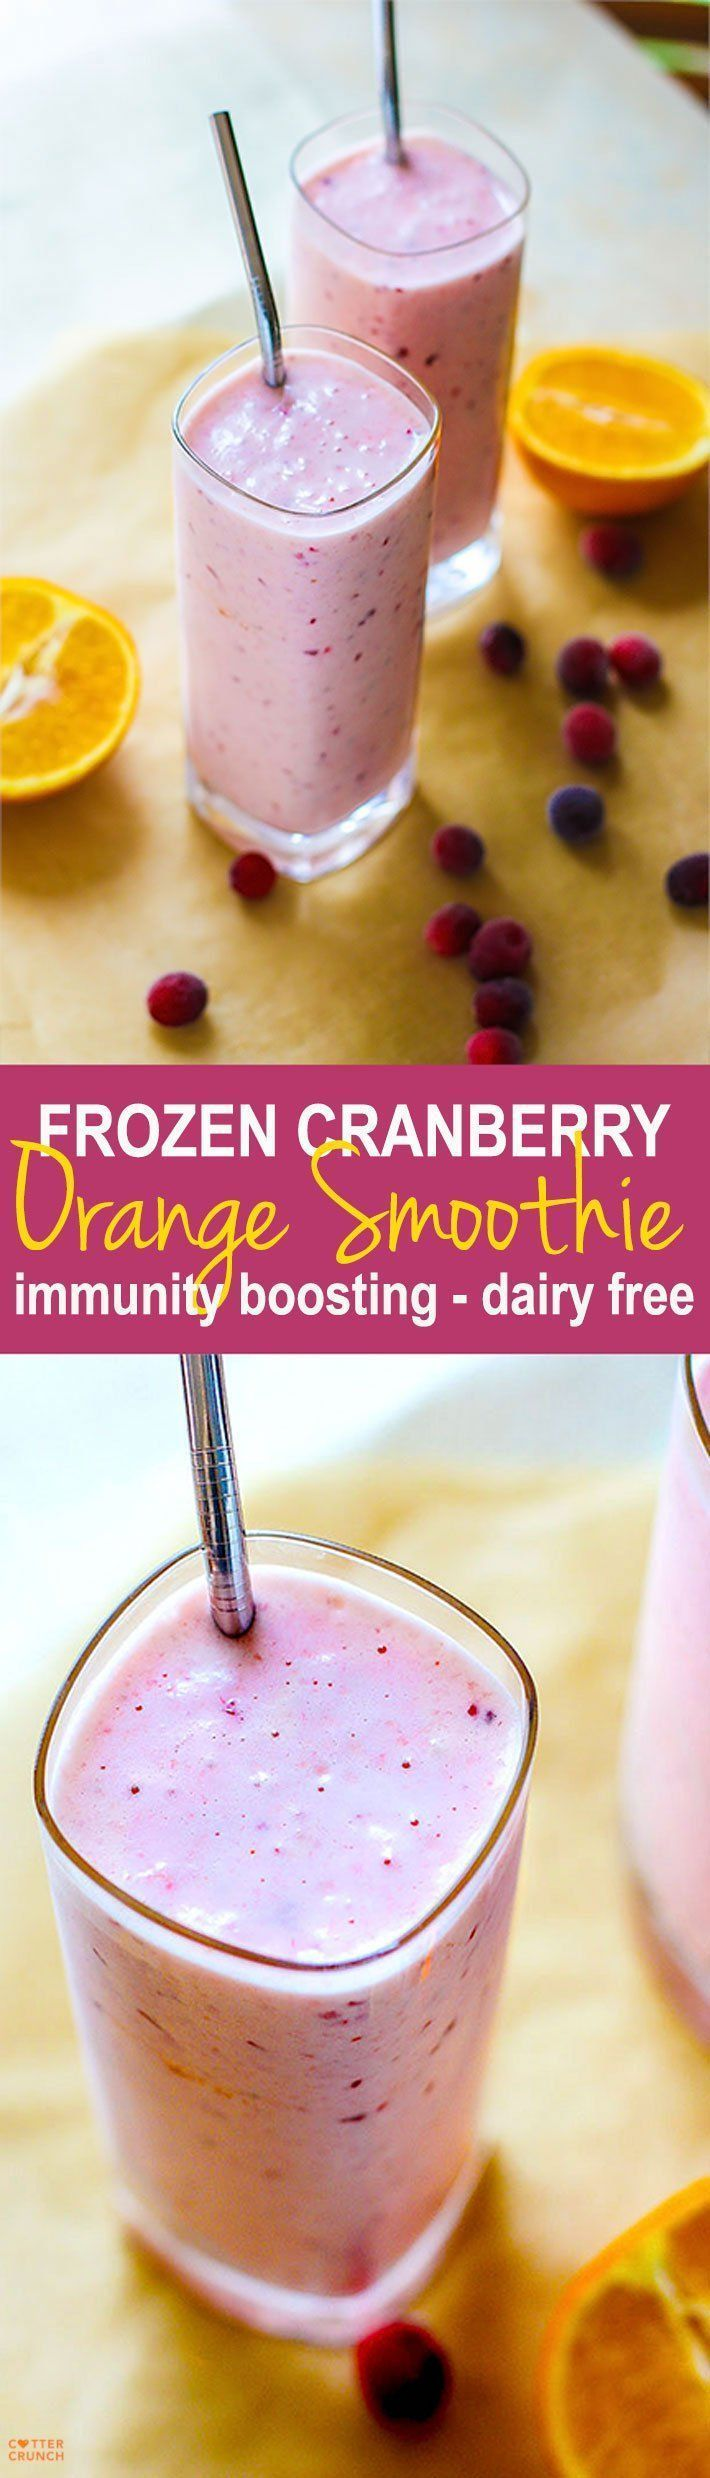 Vegan immunity boosting frozen cranberry orange smoothie! A triple whammy smoothie of Vitamin C without a ton of extra sugar. Just natural fruit sugars from orange and cranberry! Plus it's anti-oxidant rich and dairy free, not to mention tastes pretty darn delicious.